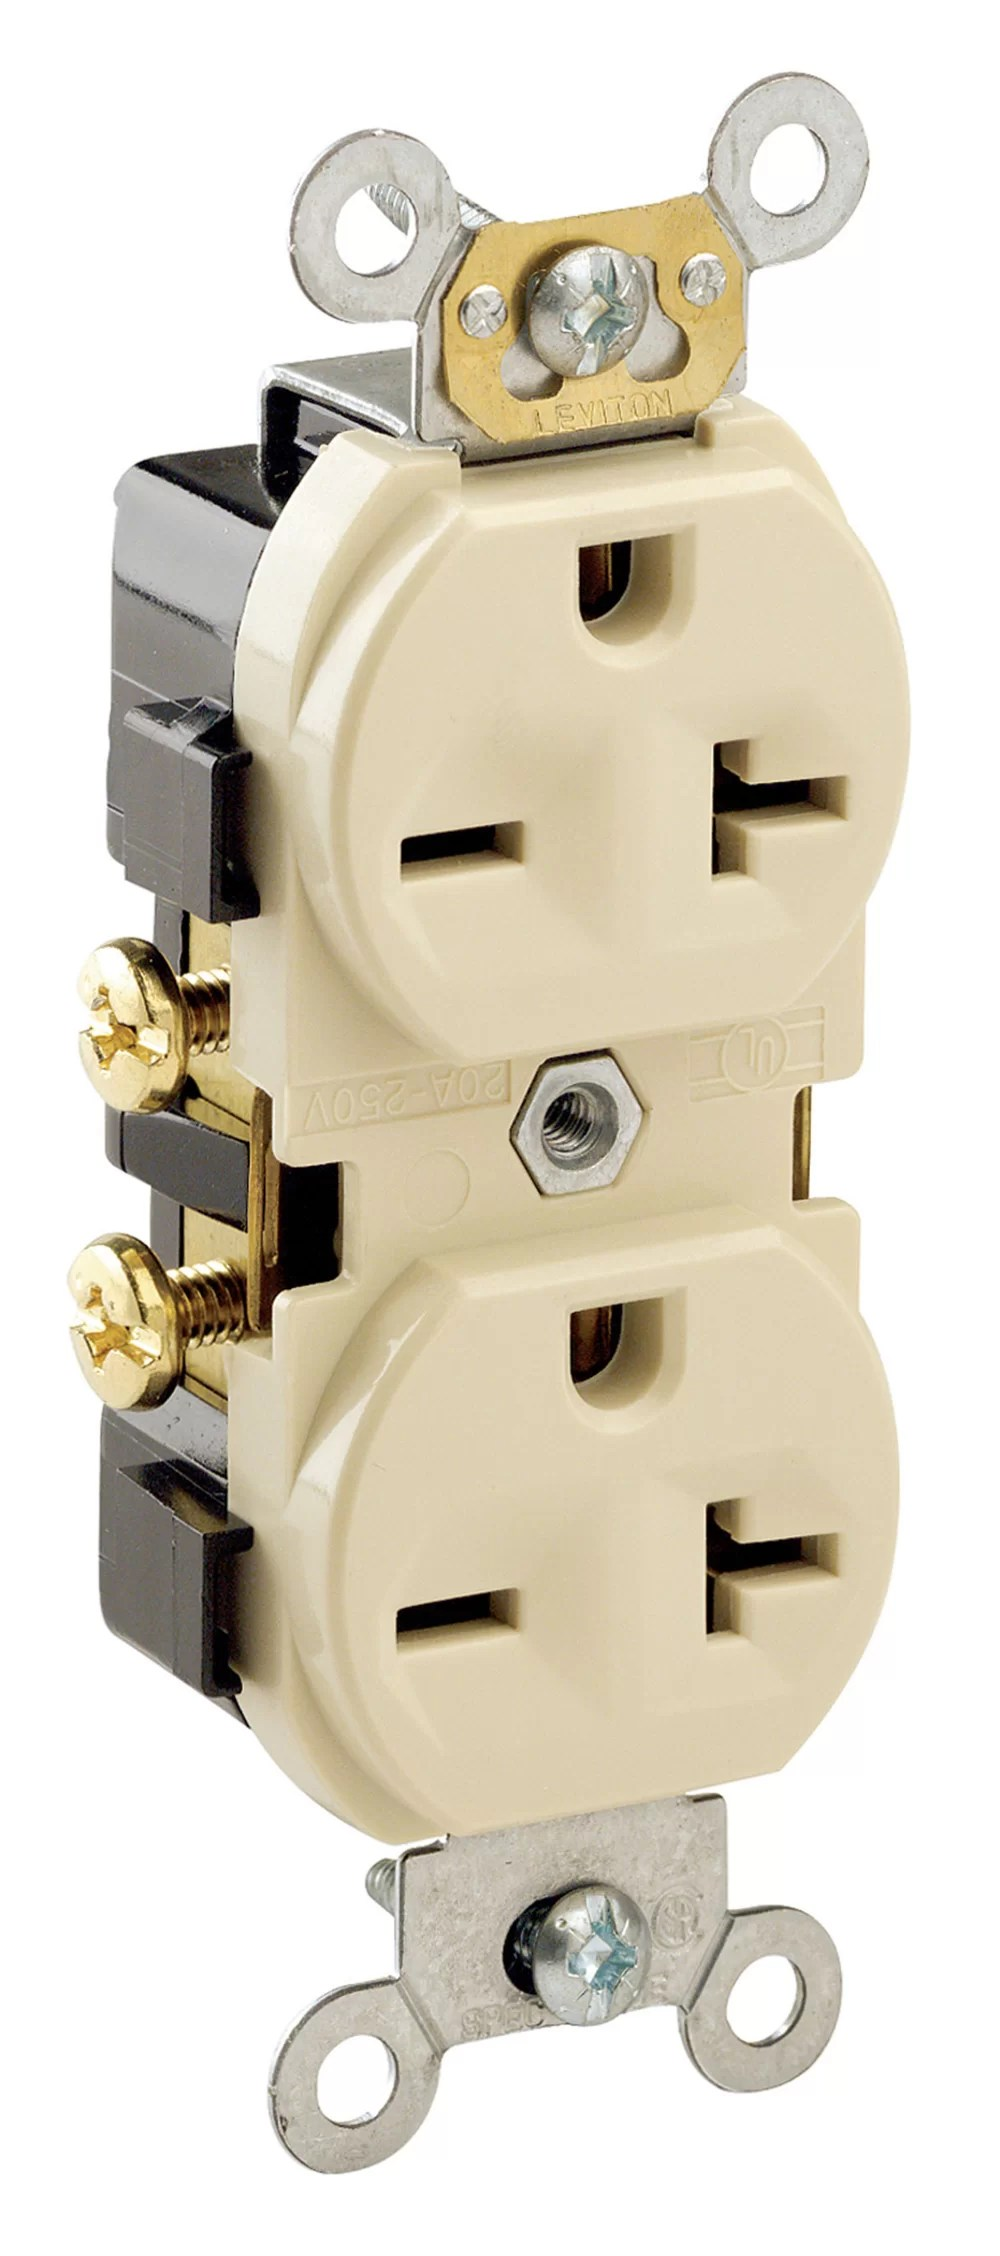 hight resolution of 051 05822 00i 20 amp gfci duplex outlet